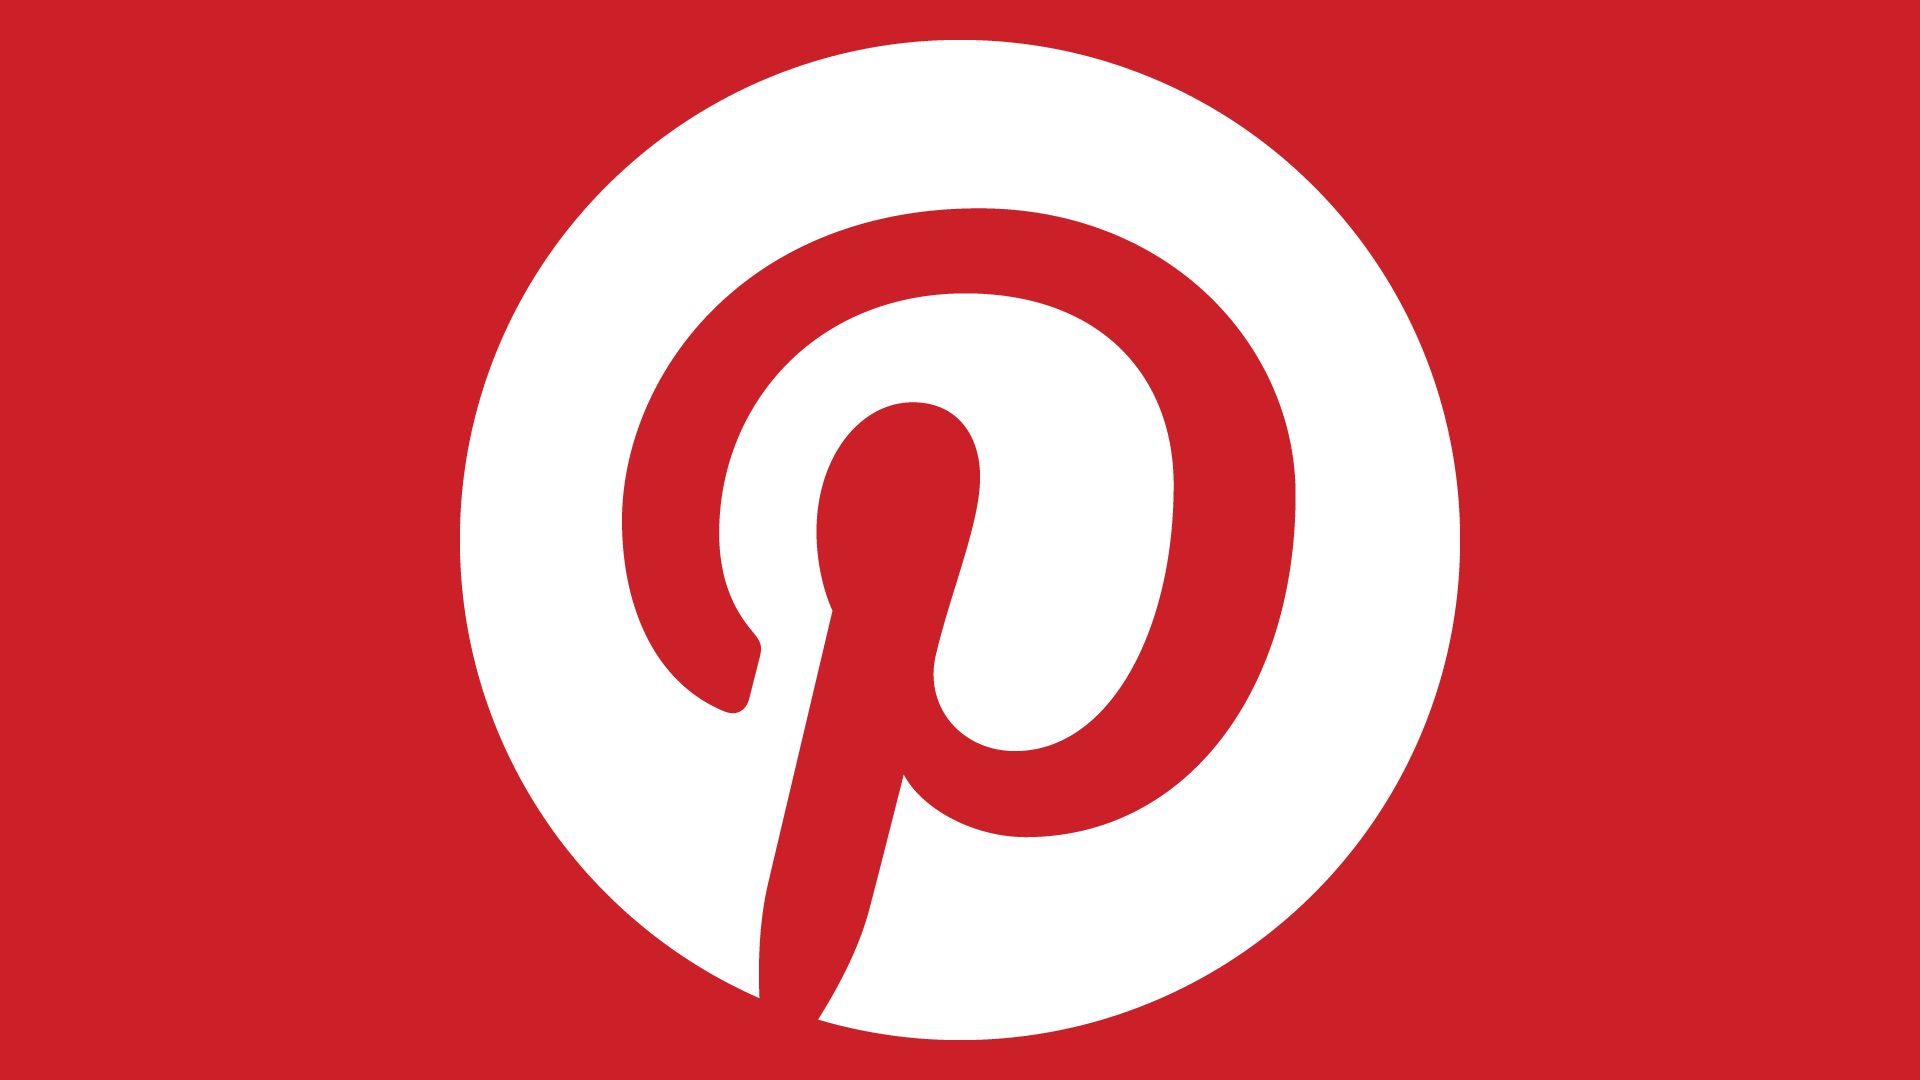 19 Pinterest Statistics You Probably Don't Know, But Should [Infographic]